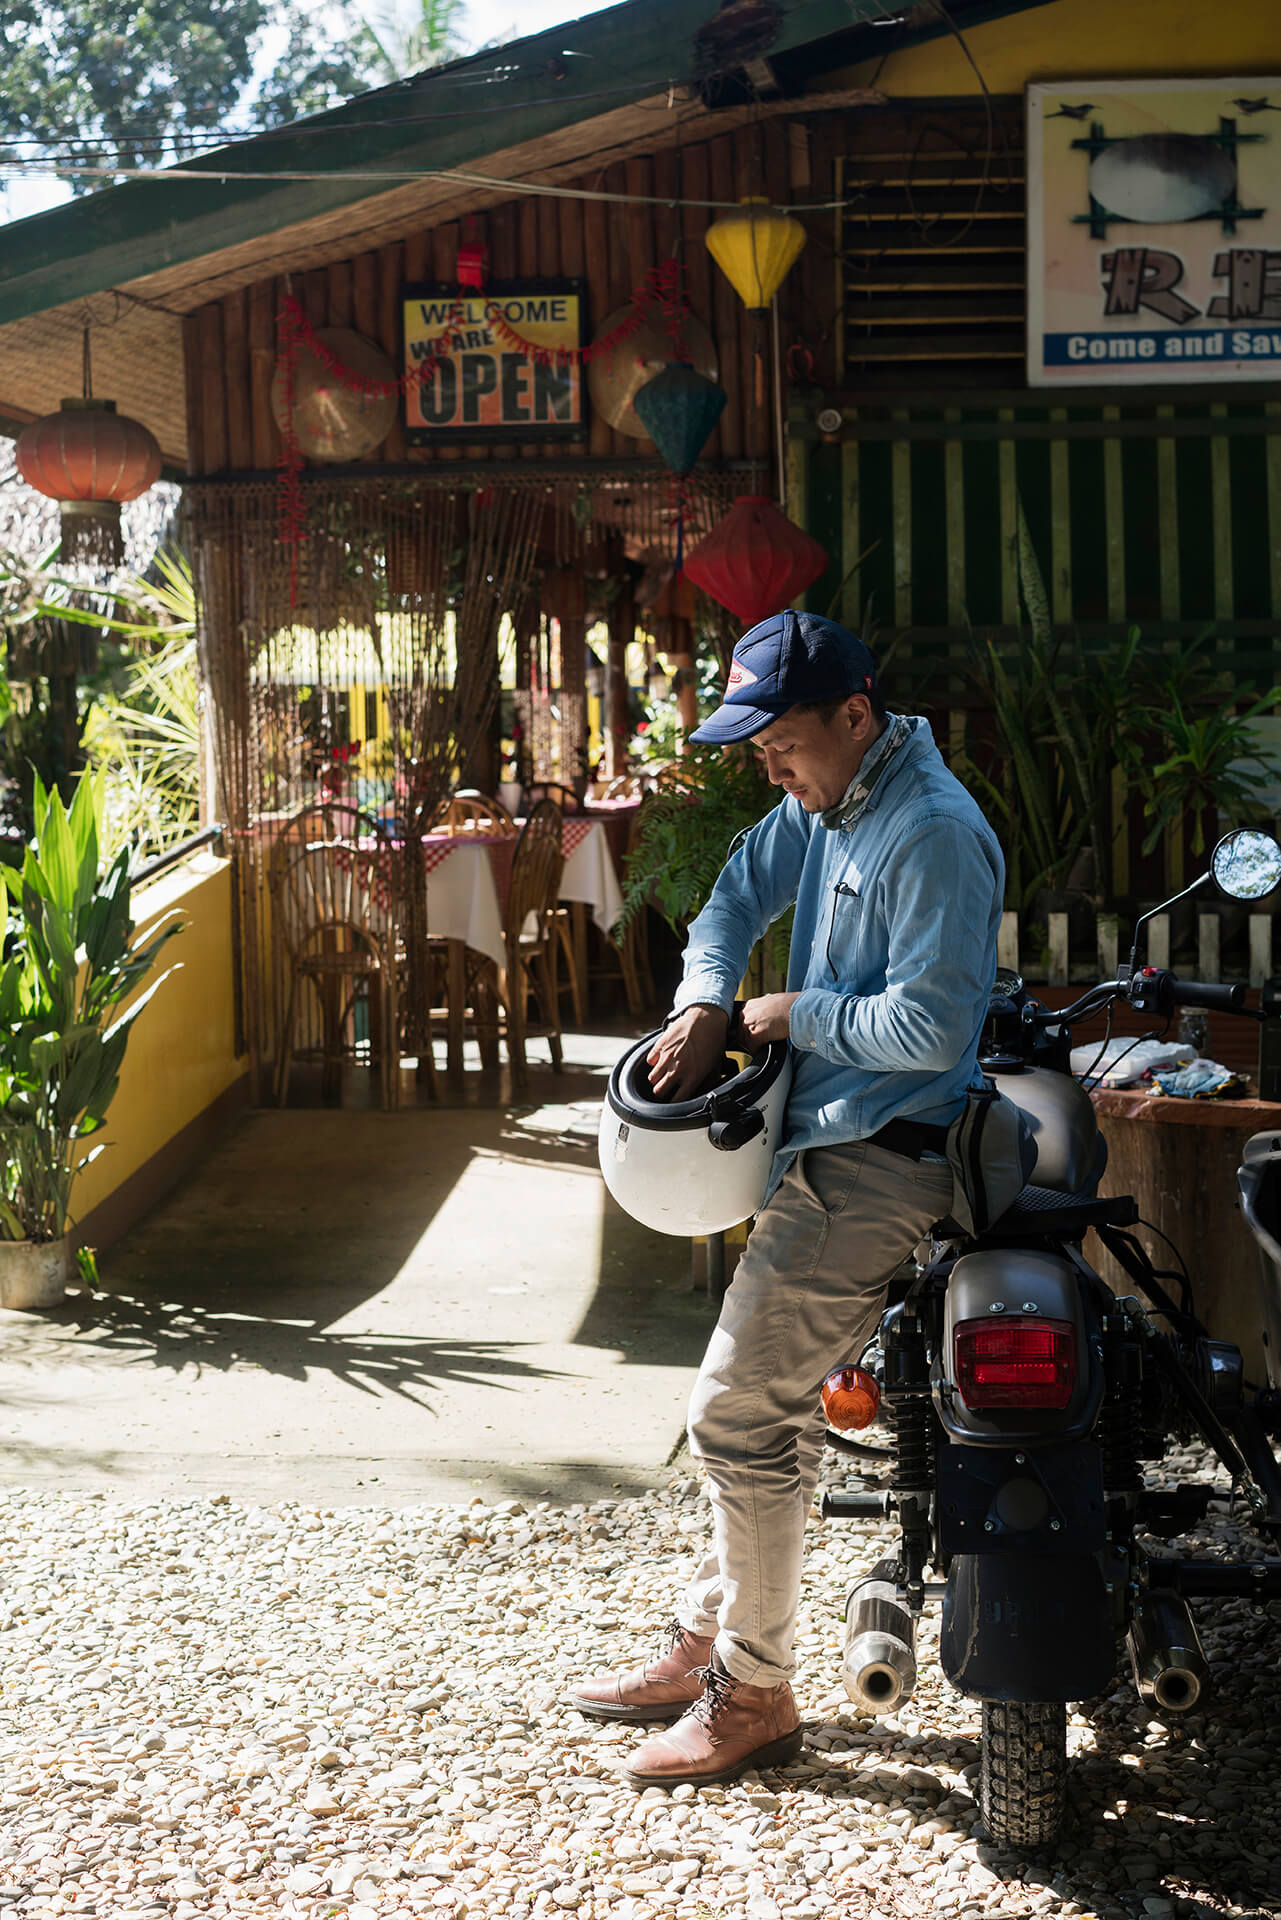 A Ural rider stops over for lunch at an iconic carinderia.